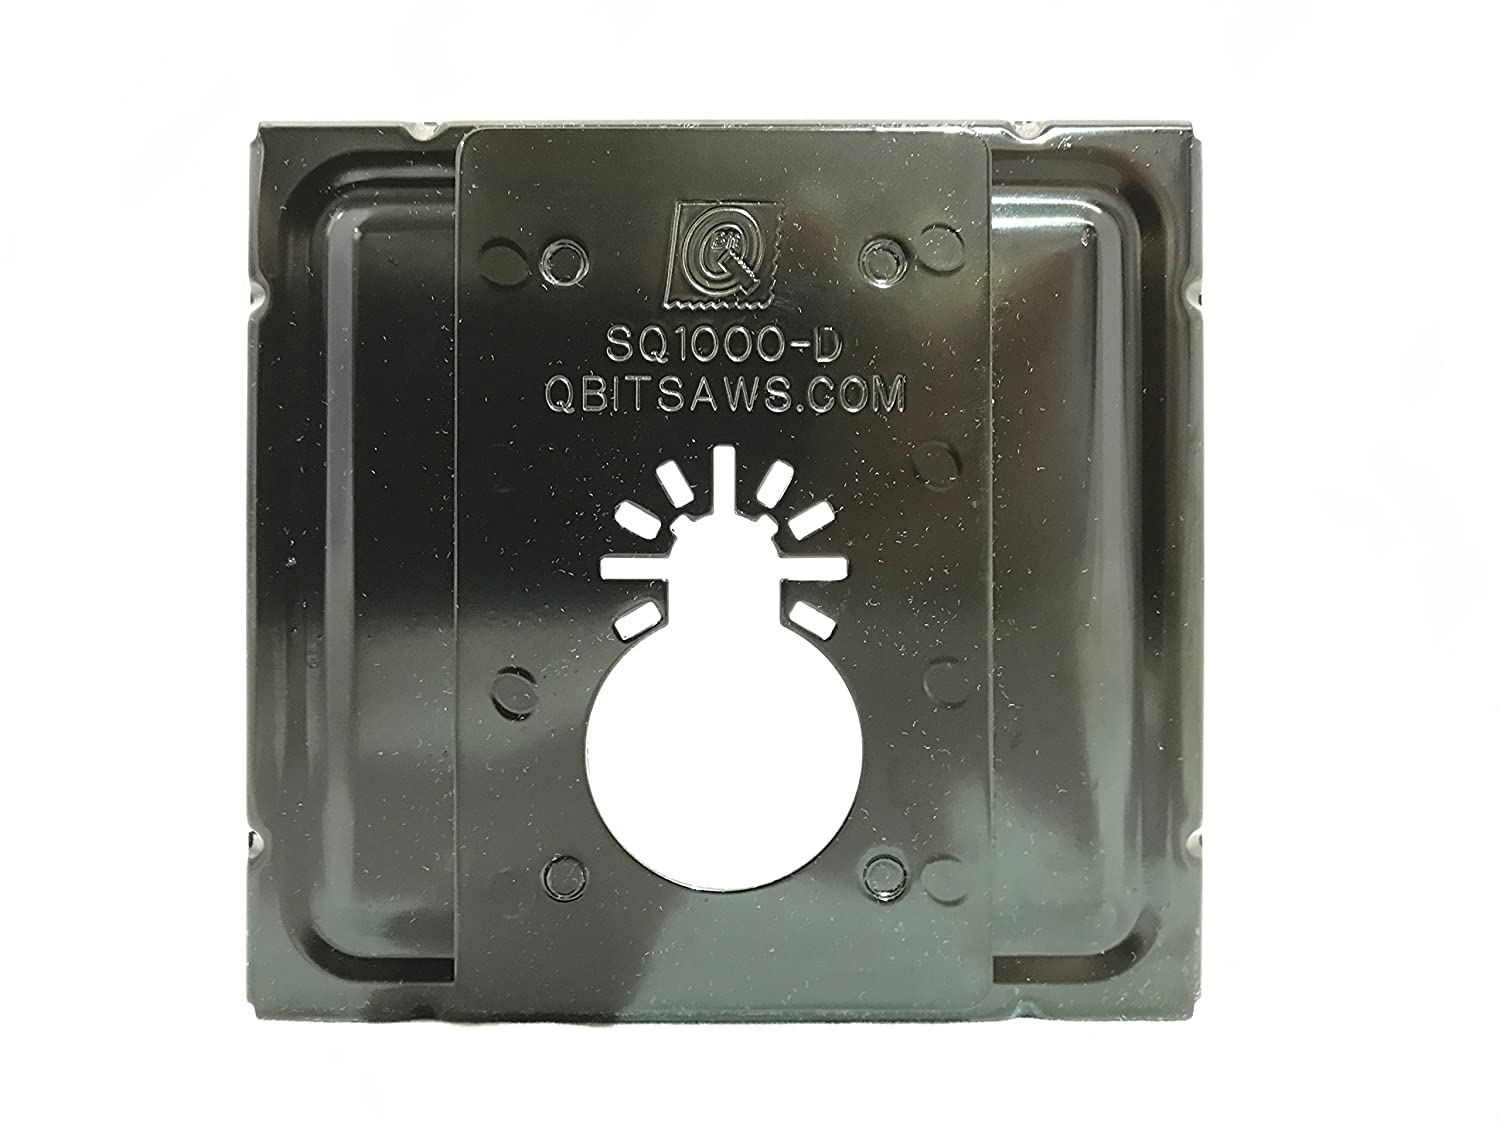 Box Saw for Double Gang Outlet Box / QBit SQ1000-D Power Oscillating ...